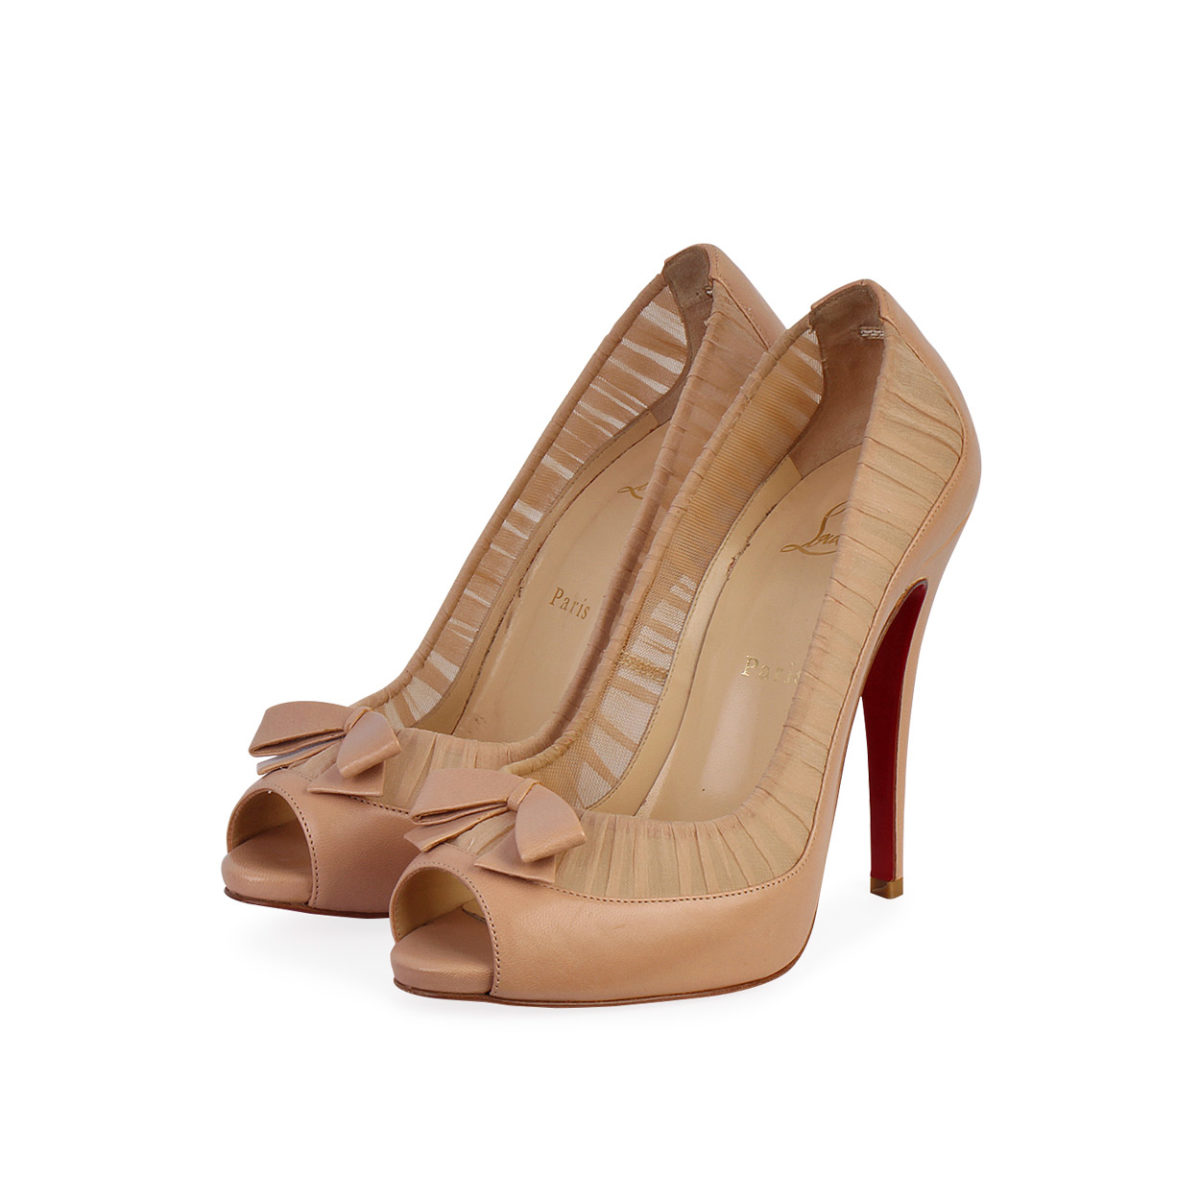 reputable site a9c9c 2aeb8 CHRISTIAN LOUBOUTIN Leather Chiffon Angelique Peep Toe Pumps Nude - S: 38  (5)